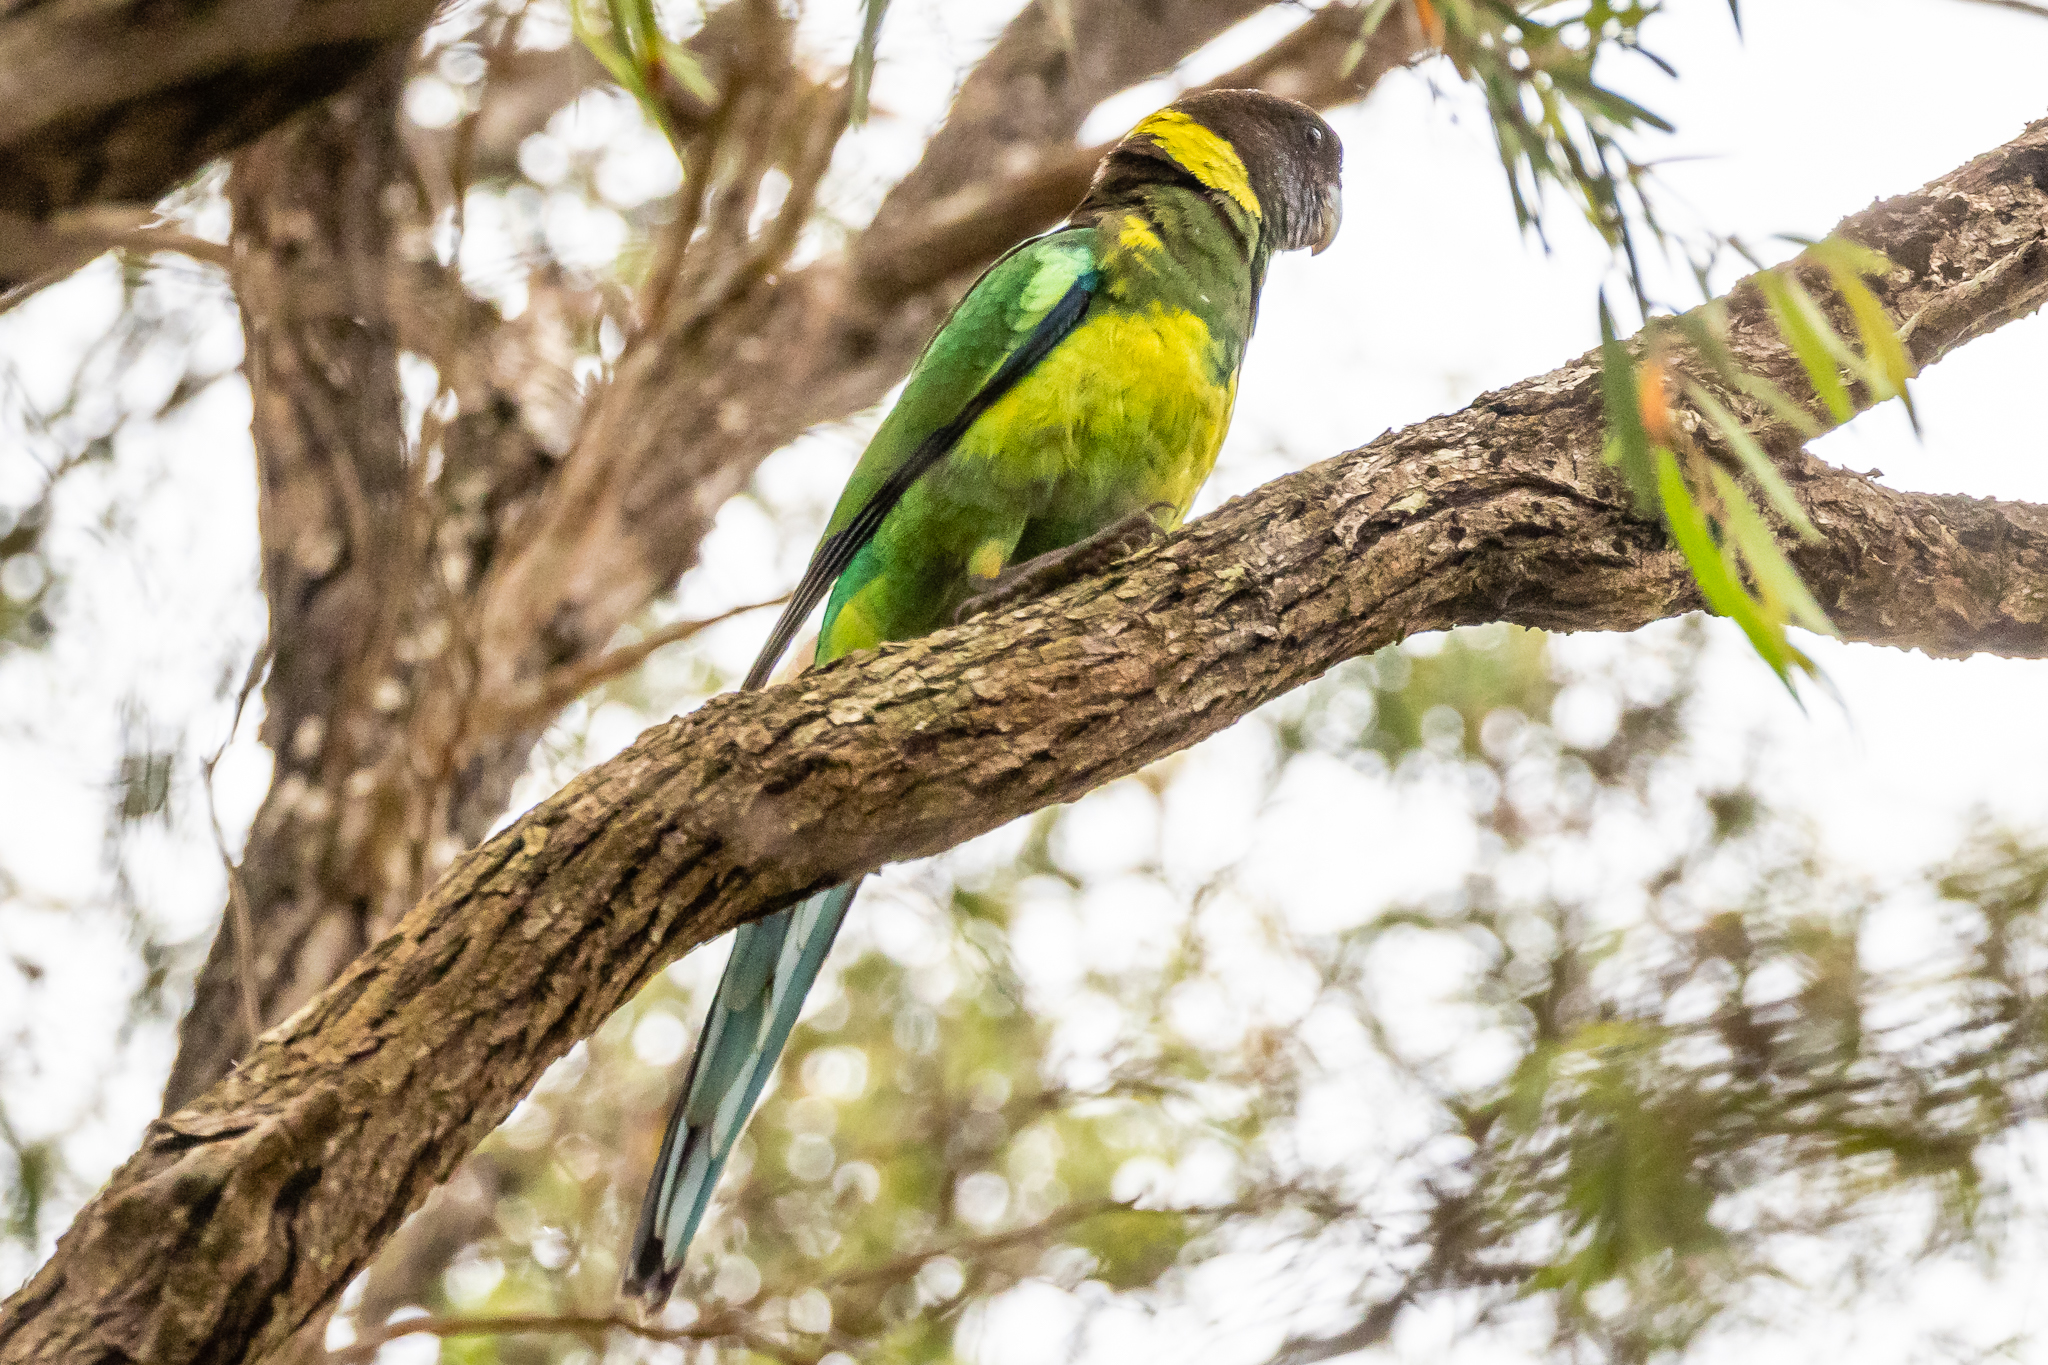 """The """"Twenty-eight Parrot"""", named for its three note call, is one of the Australian Ringneck (38 cm) races found in the south-west area."""